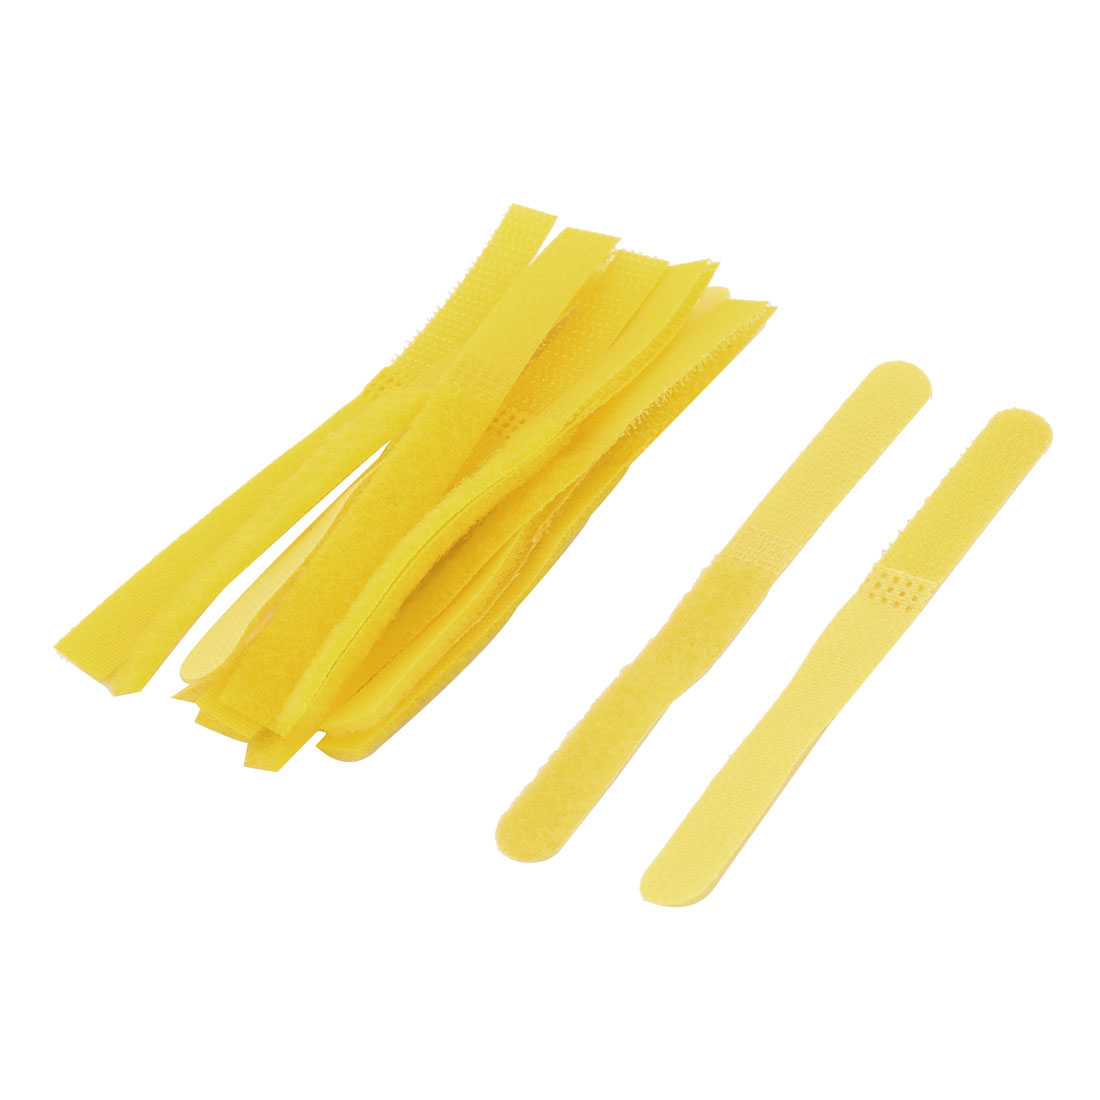 Lady Nylon Magic Bangs Hair Sticker Square Tape Fringe Care Tool Yellow 13 Pcs